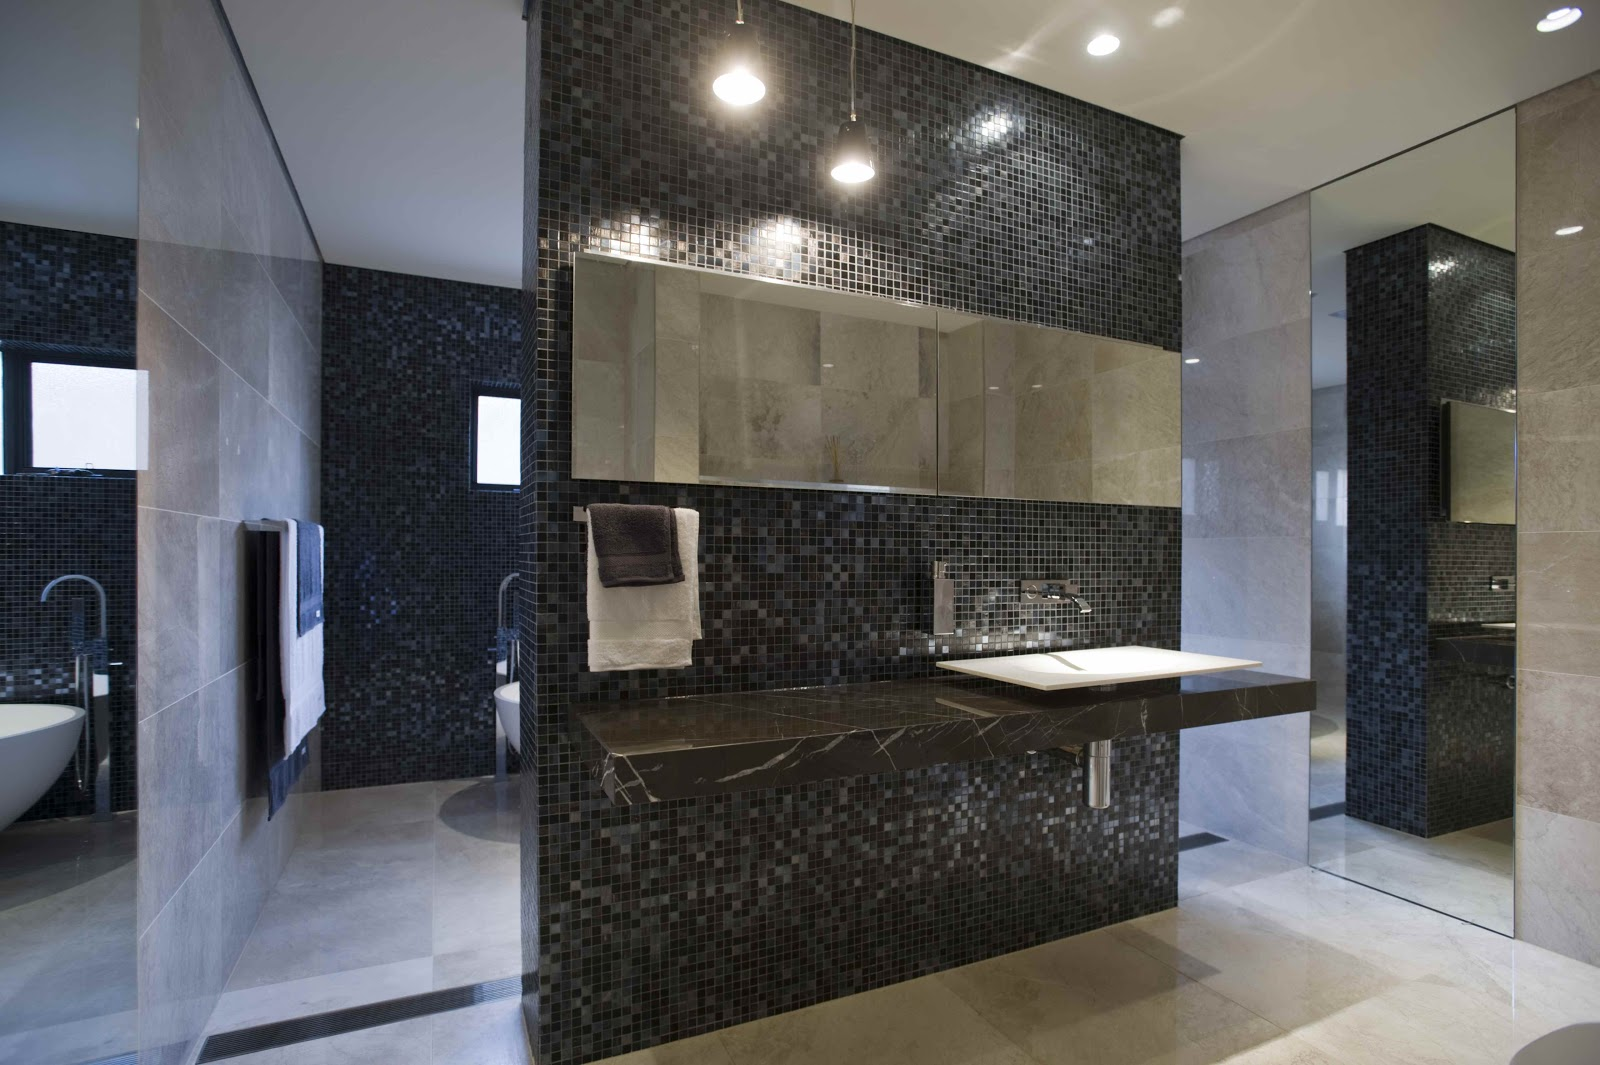 minosa large open bathroom feature the stunning bisazza iside mosaic